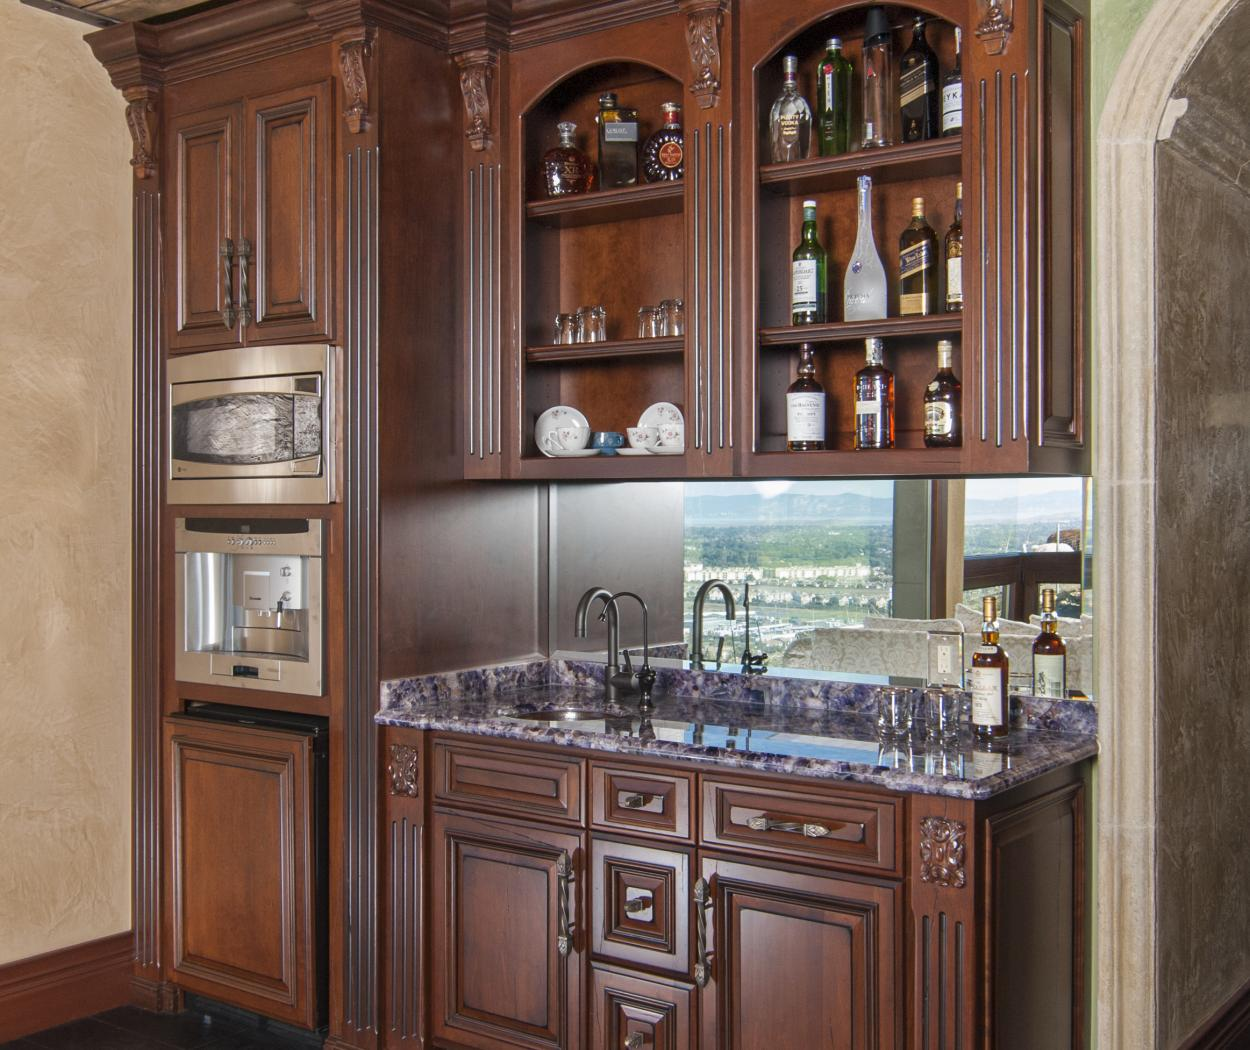 Beautiful Bar Built-In for a Pool House with Open Shelves, Granite Counter Top and Stainless Steel Appliances